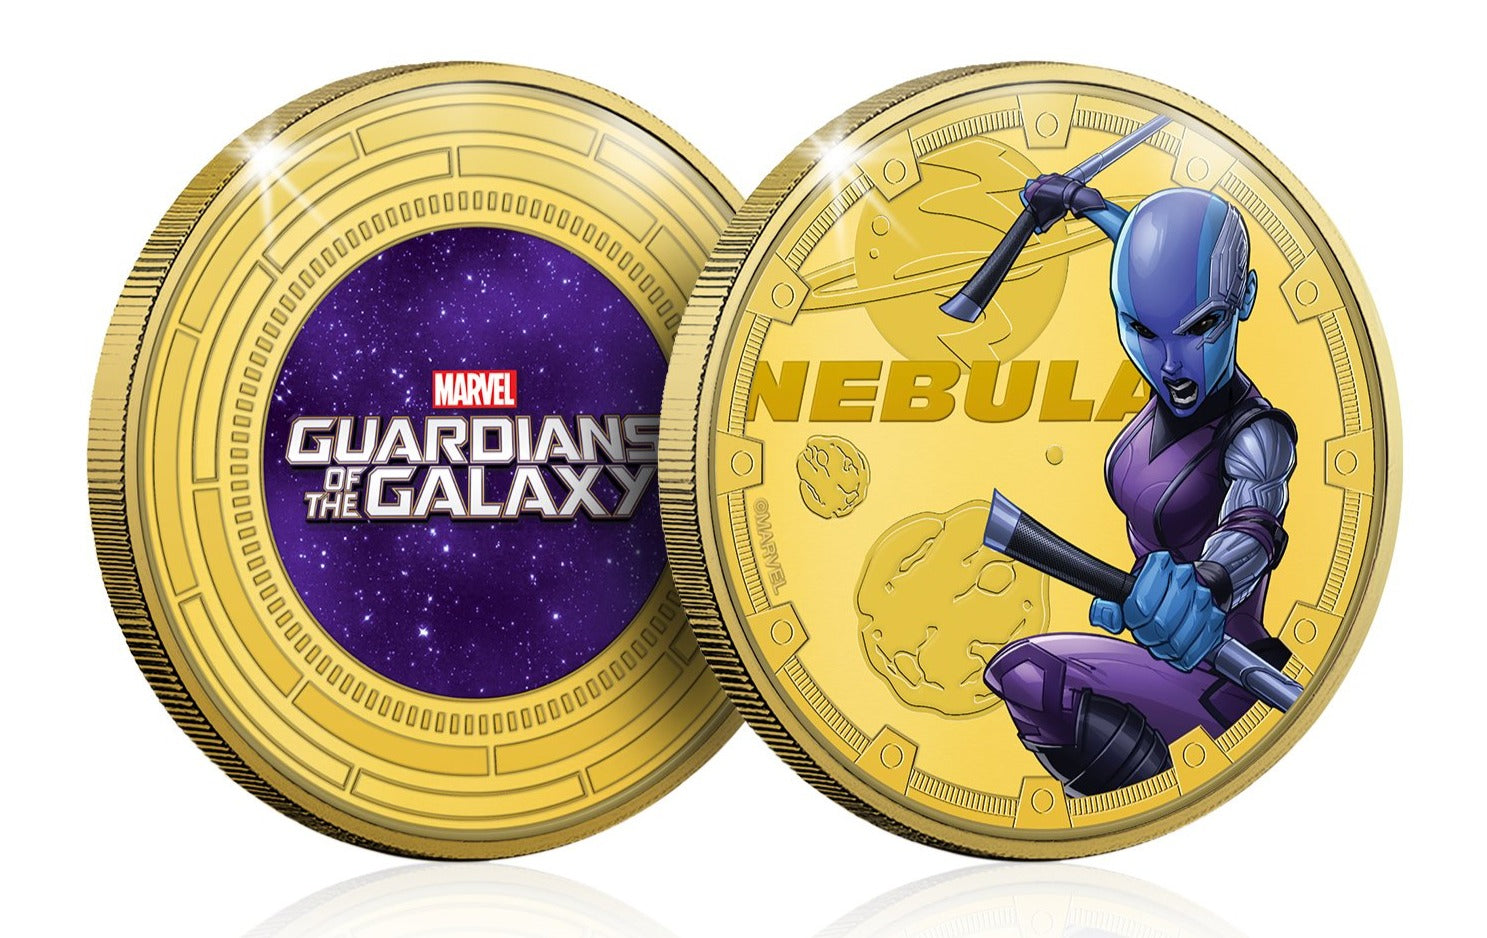 Marvel Guardianes de la Galaxia - Nebula - Moneda / Medalla conmemorativa acuñada con baño en Oro 24 quilates y coloreada a 4 colores - 44mm